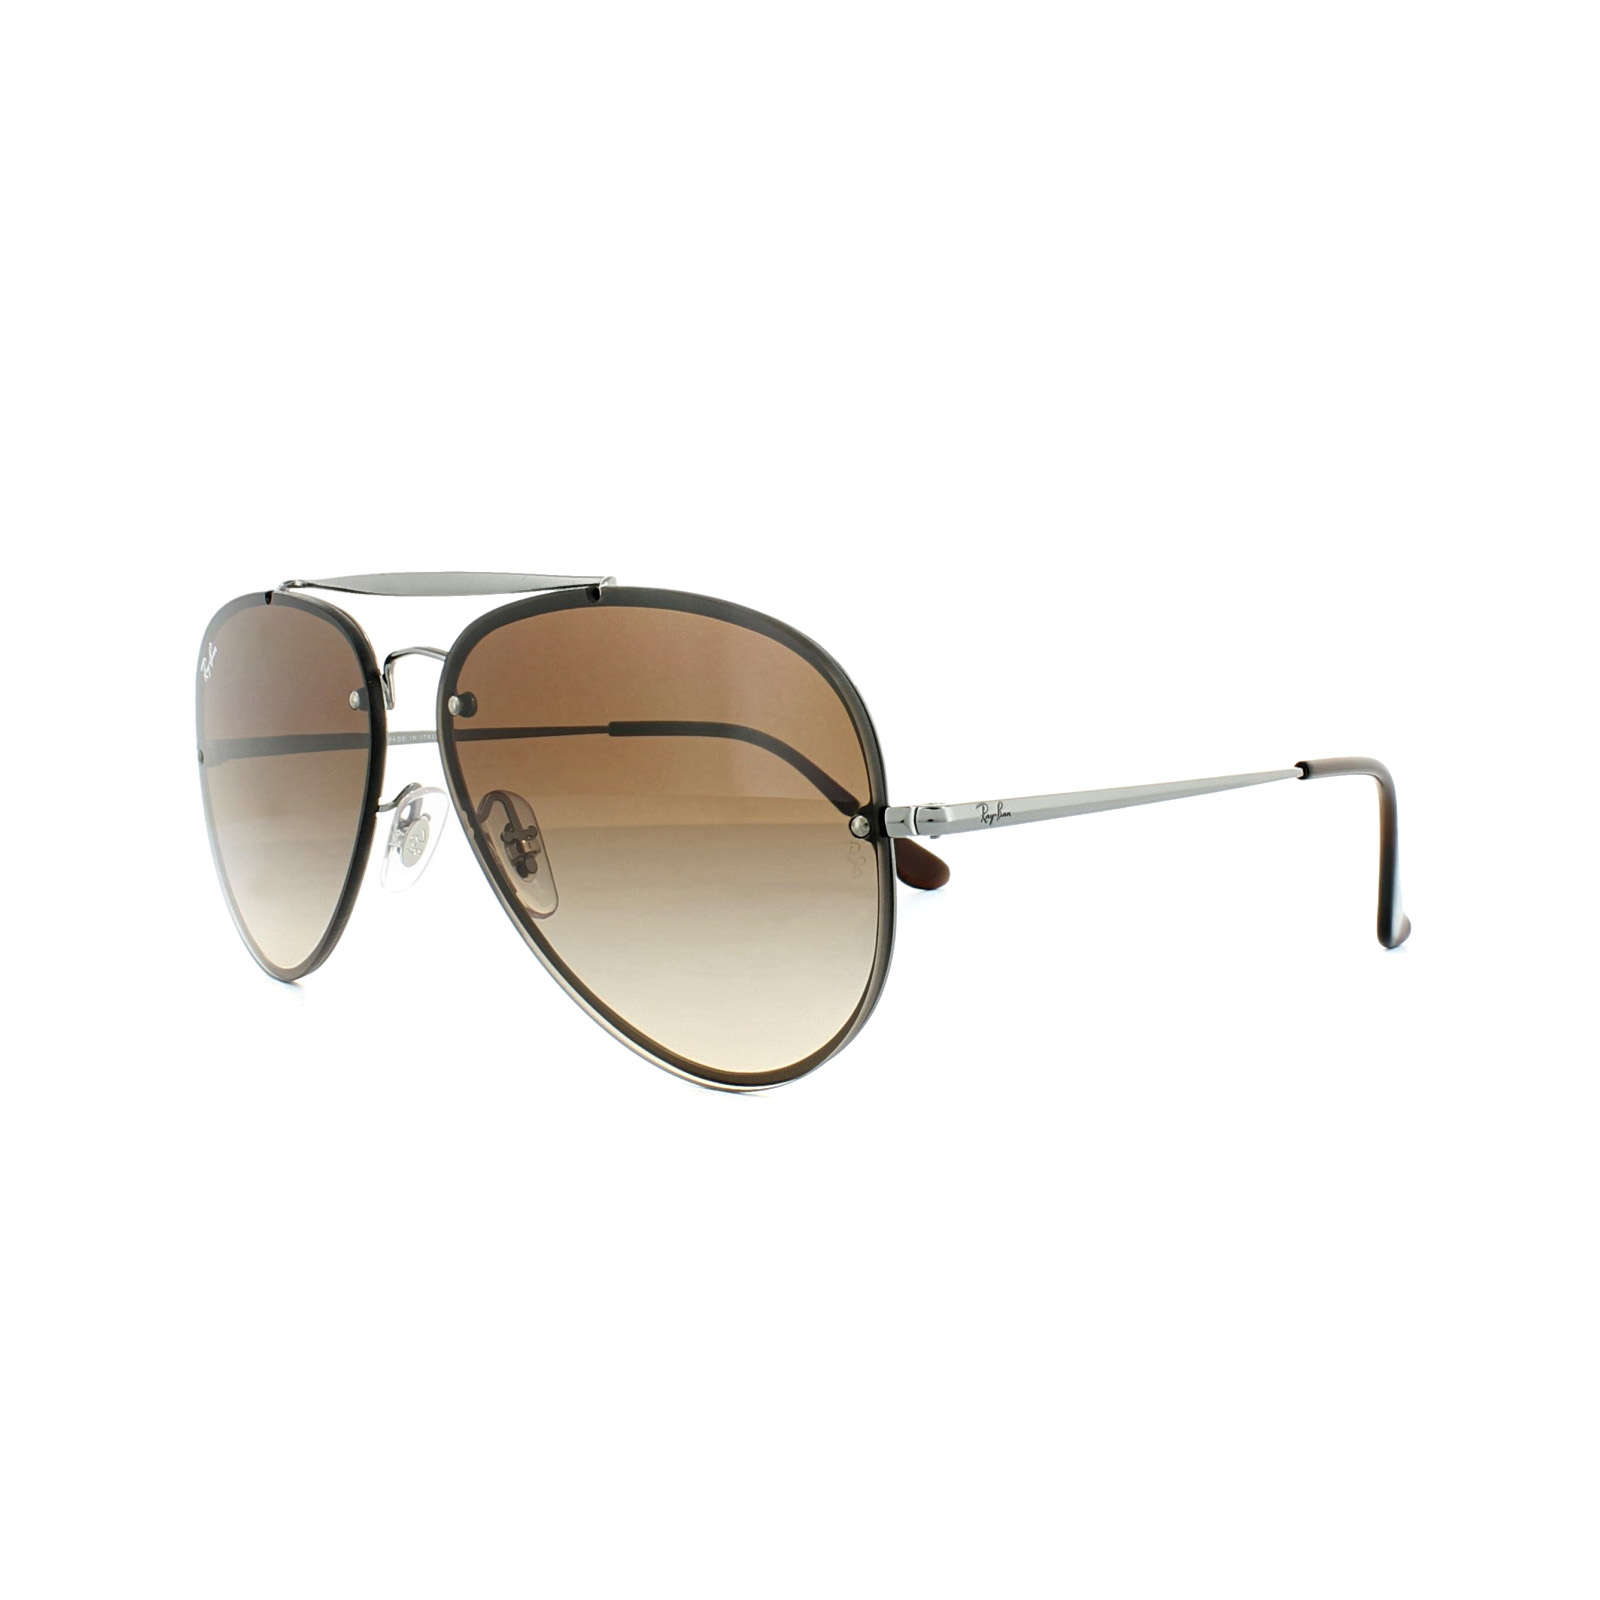 a9db0624d8 Details about Ray-Ban Sunglasses Blaze Aviator RB3584N 004 13 Gunmetal  Brown Gradient 58mm